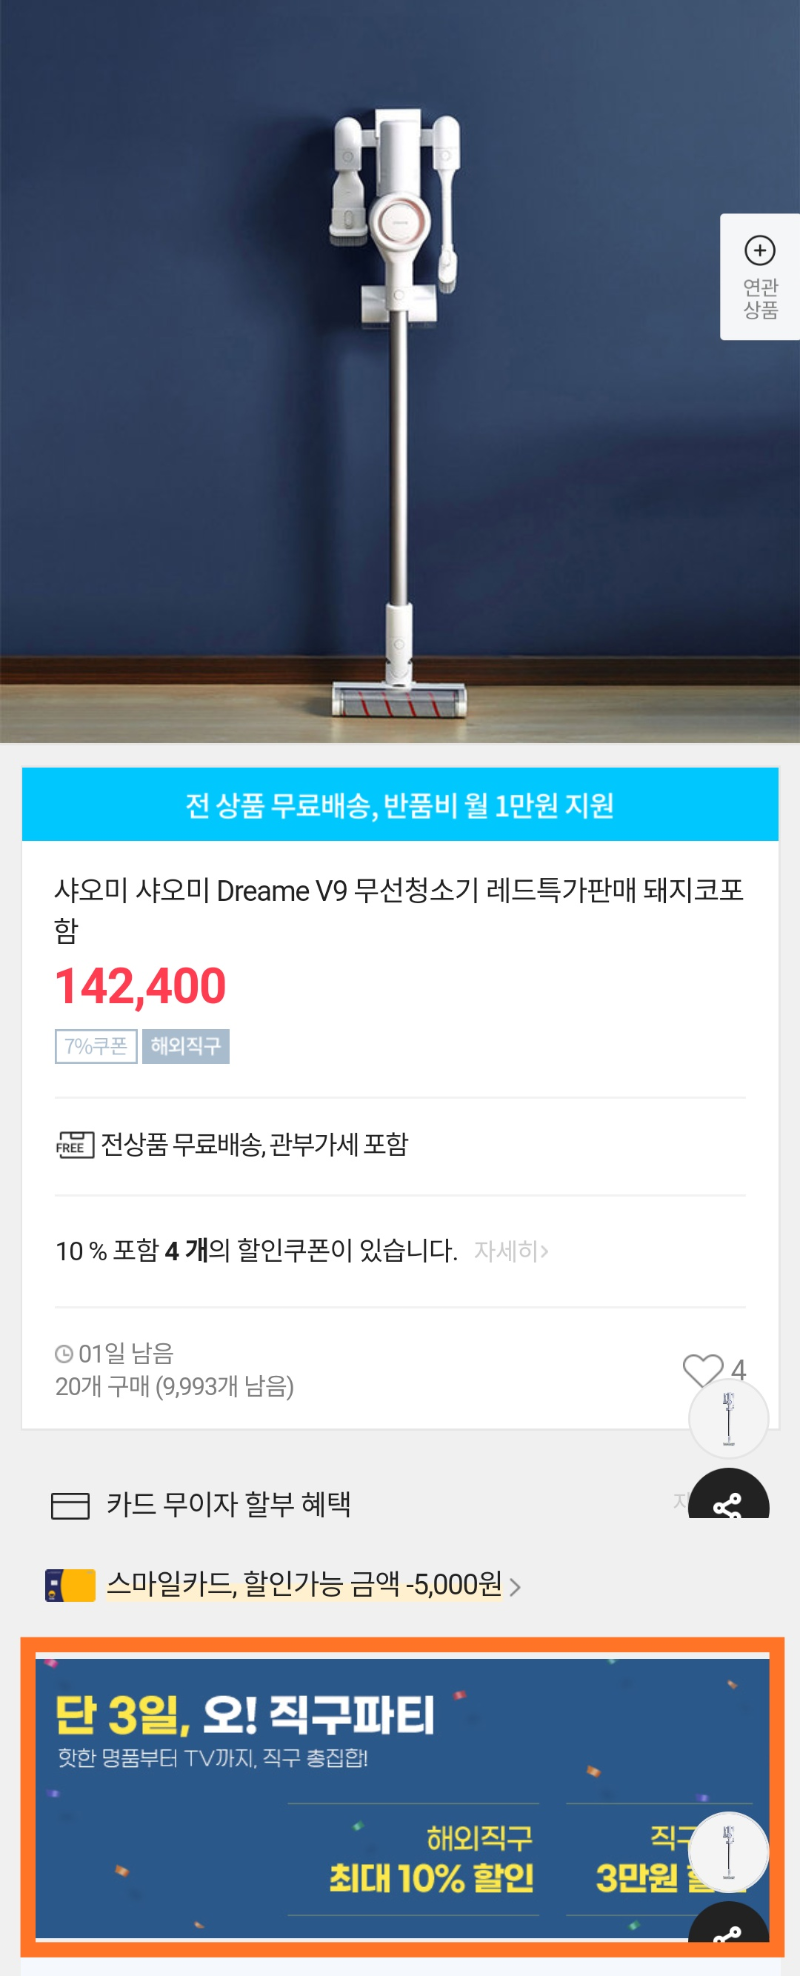 Screenshot_2019-10-23-10-28-17-230_com.ebay.kr.g9.png